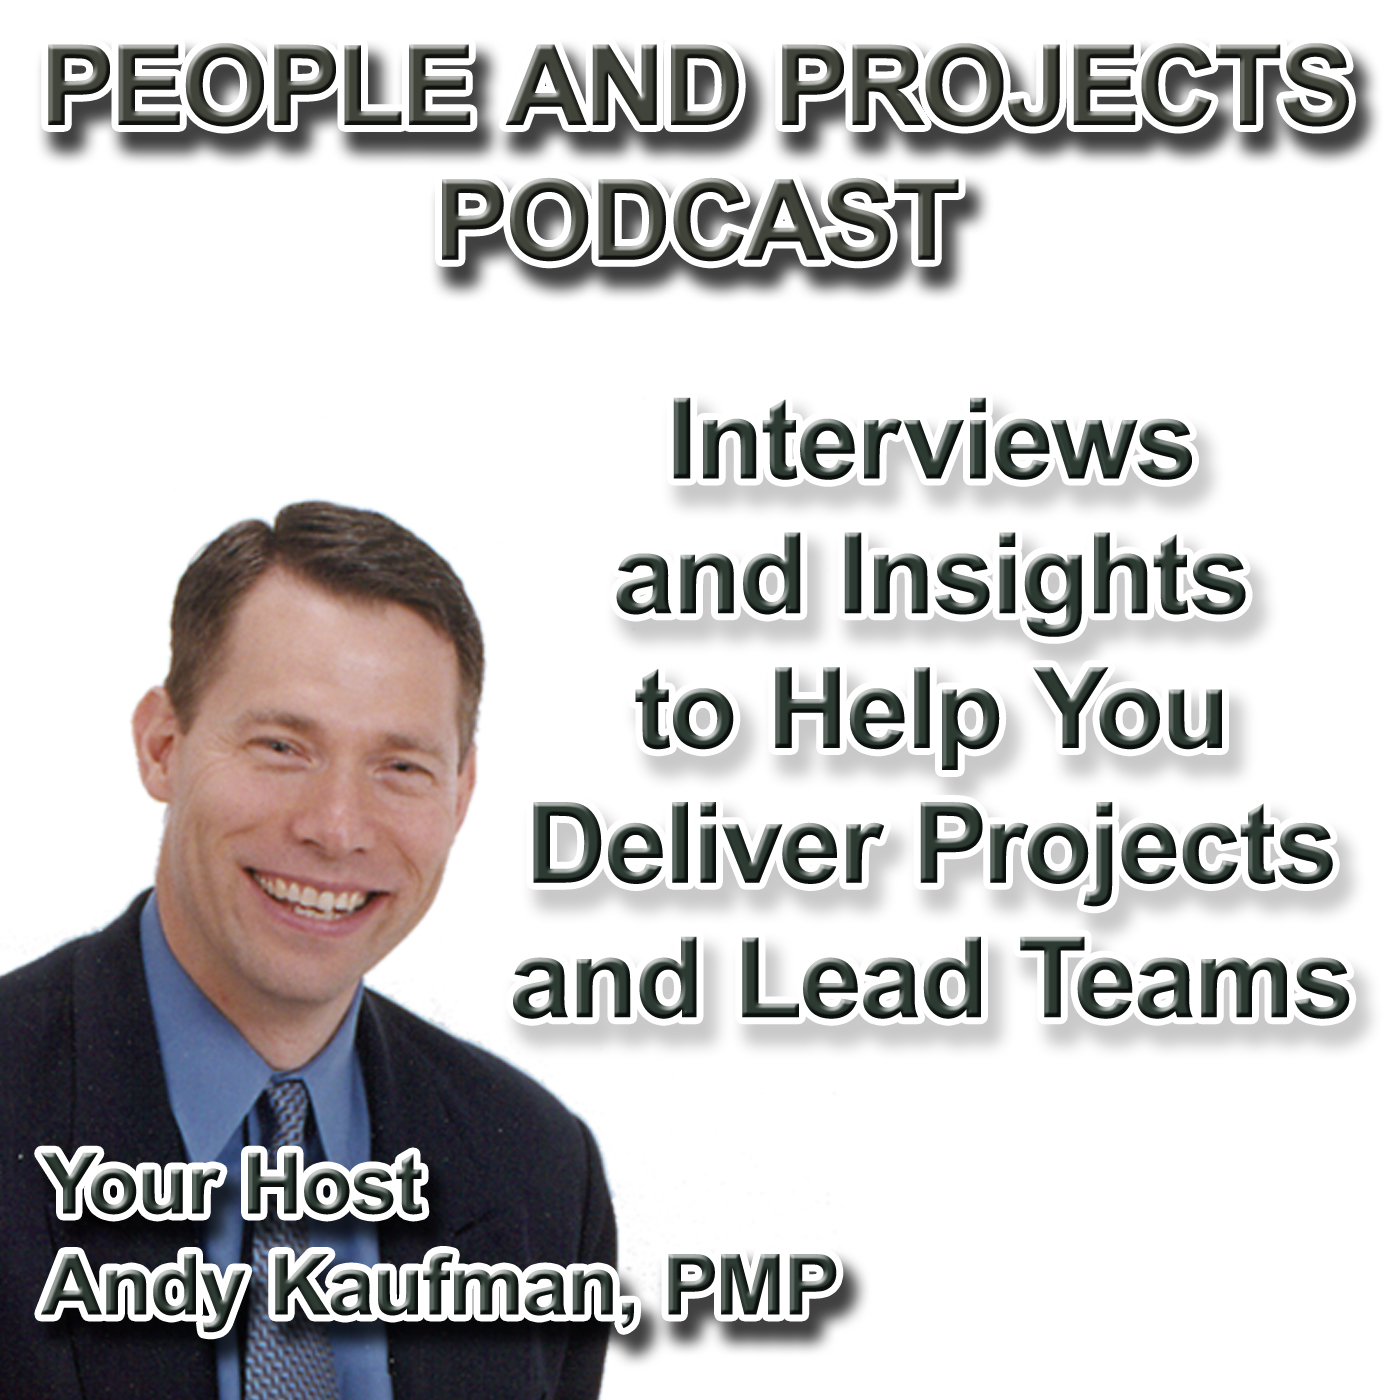 People and Projects Podcast: Project Management Podcast